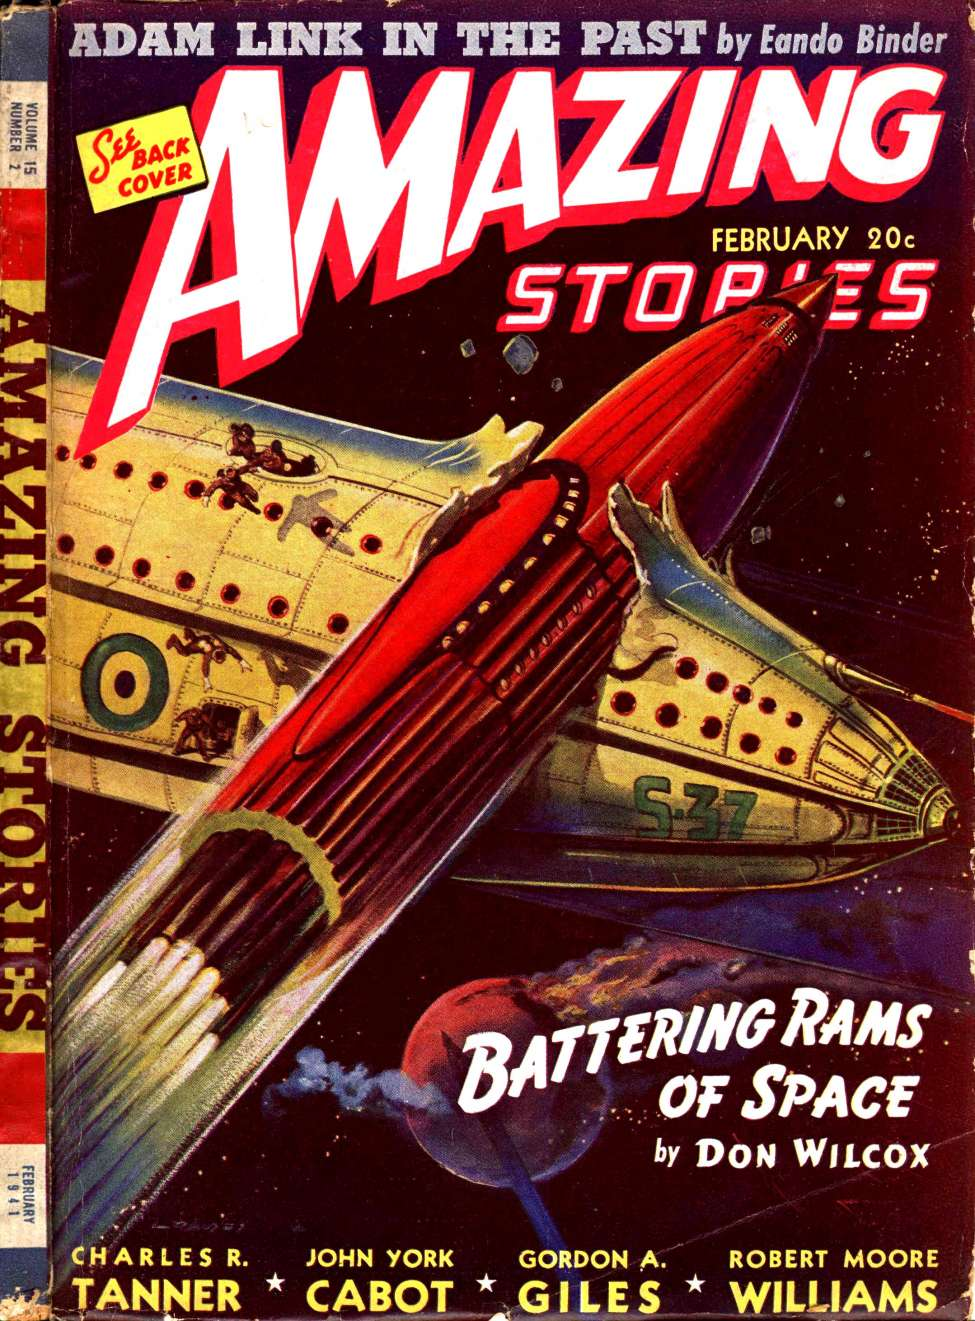 Comic Book Cover For Amazing Stories v15 02 - Battering Rams of Space - Don Wilcox